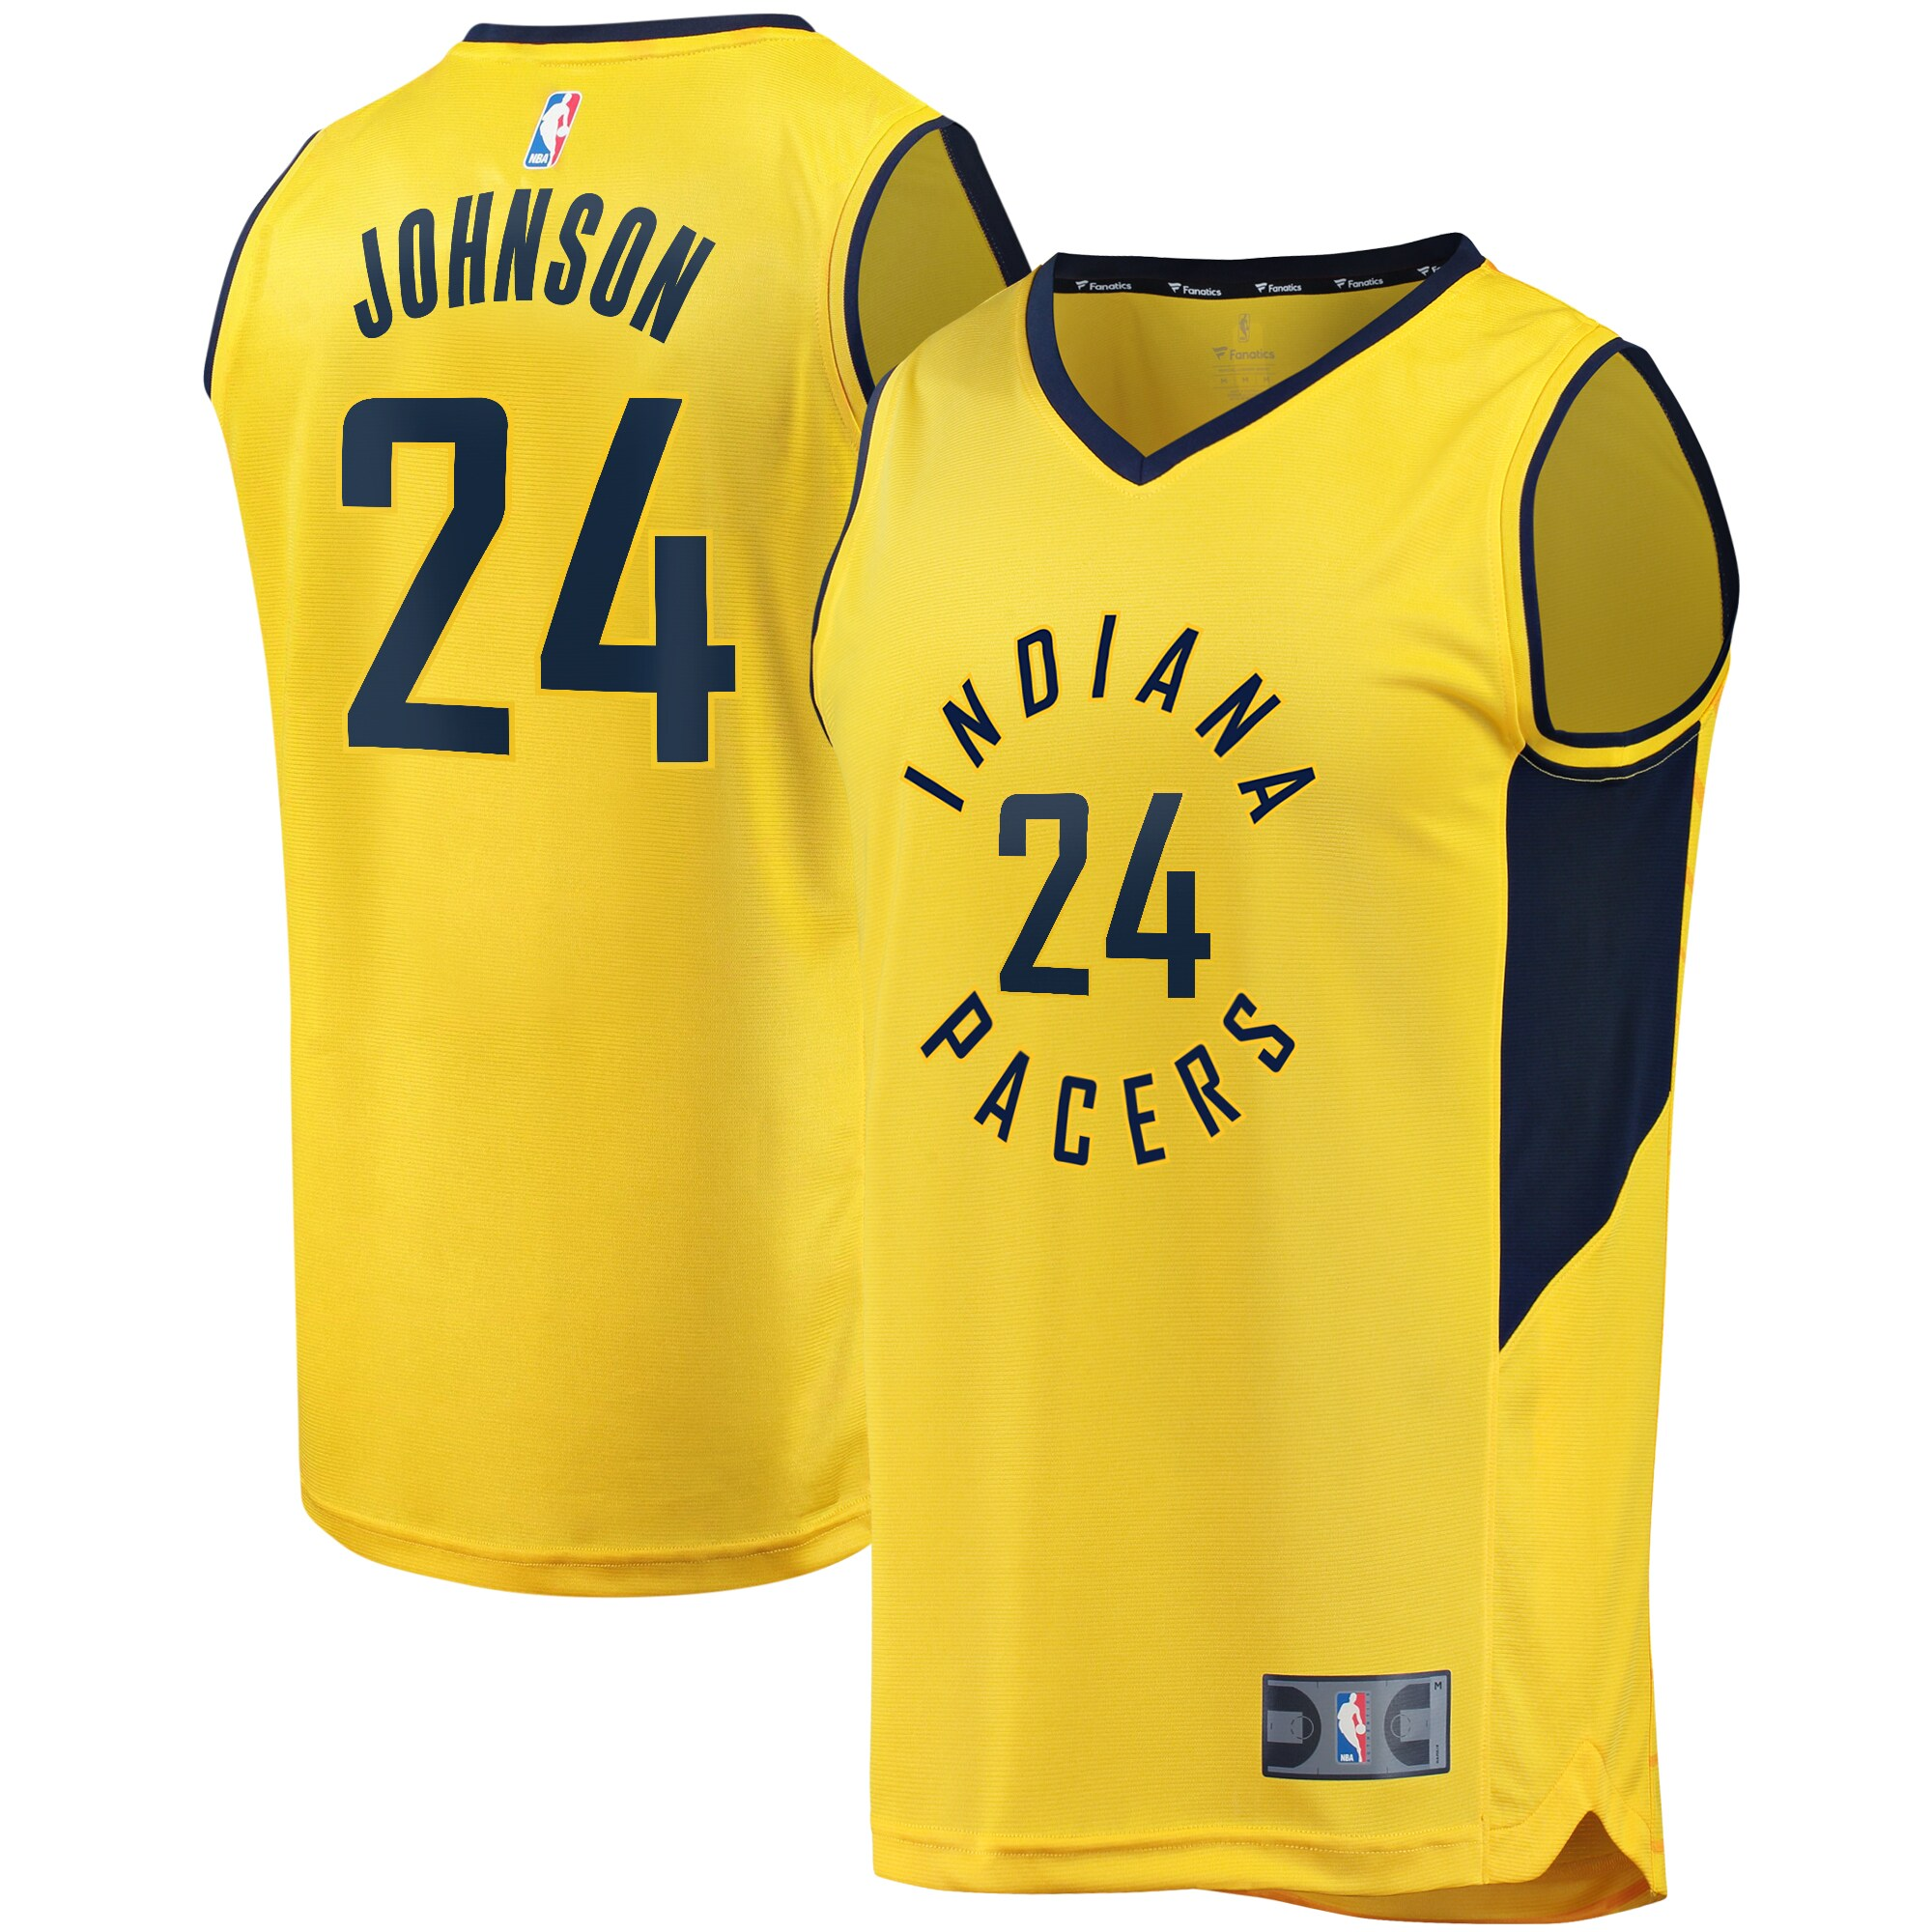 Alize Johnson Indiana Pacers Fanatics Branded Youth Fast Break Replica Player Jersey - Statement Edition - Gold